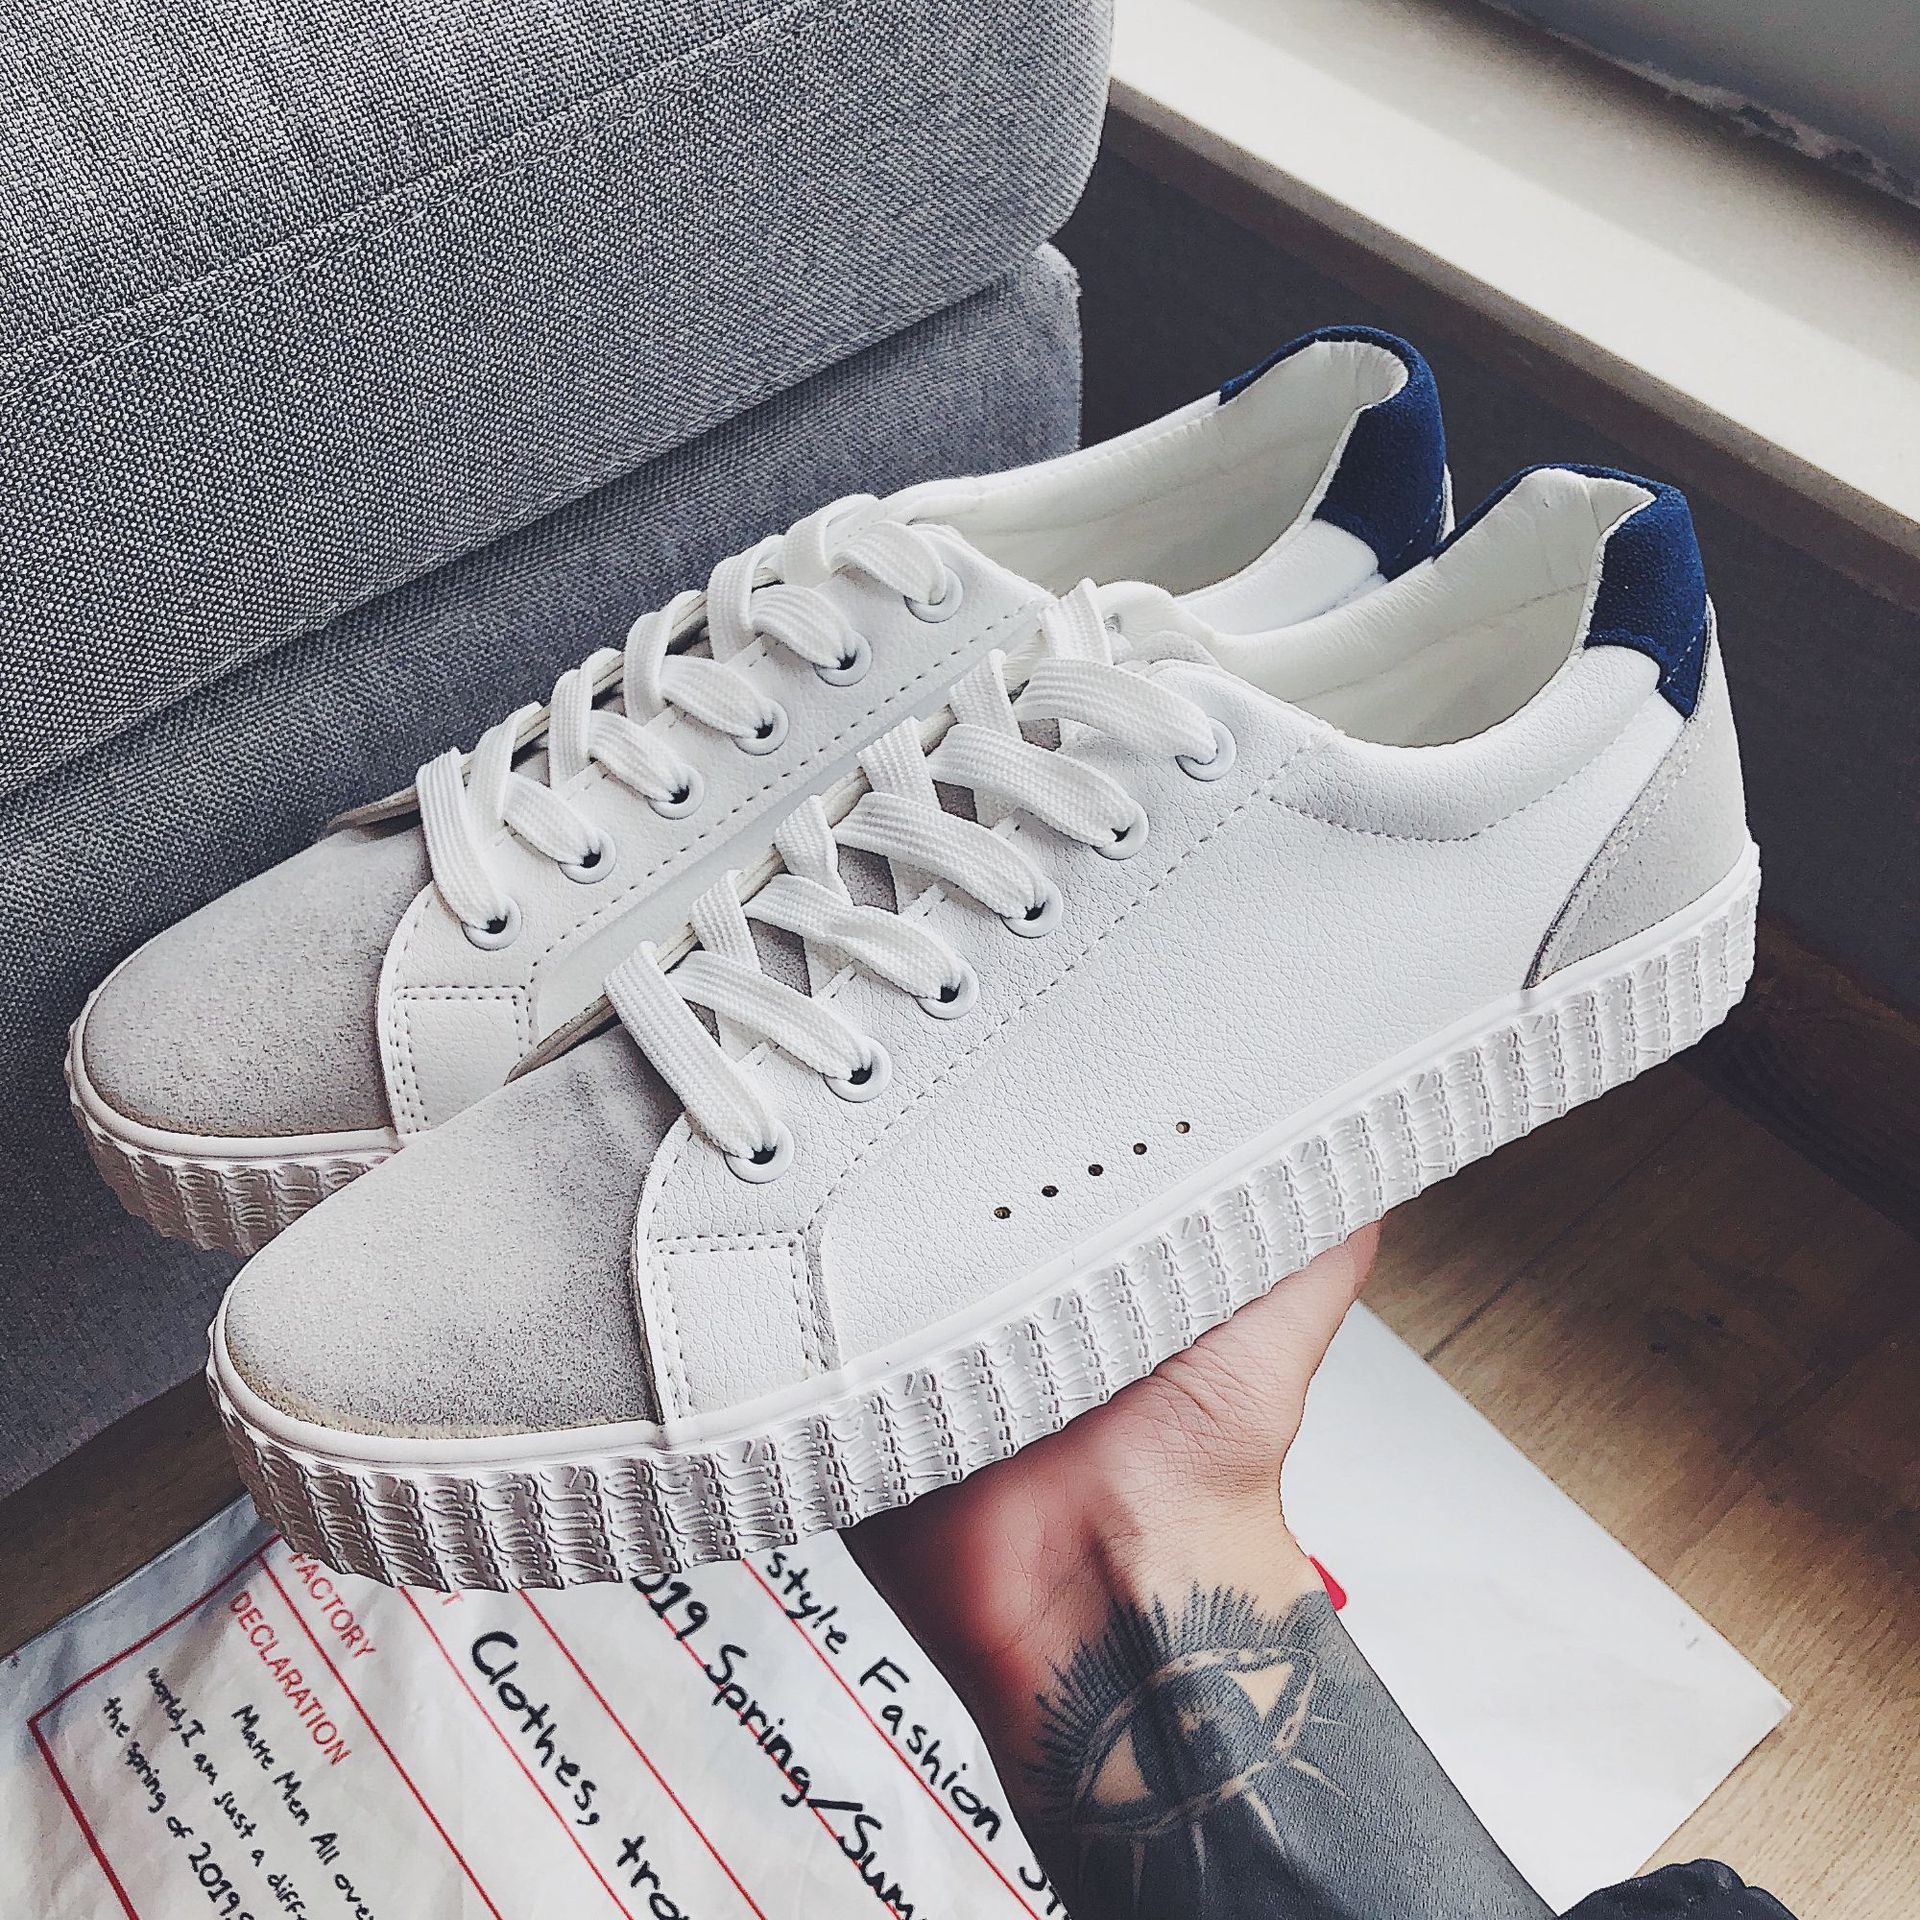 Spring and summer 2020 new simple small white shoes for students to use canvas shoes fashion brand board shoes fashion cool flat shoes